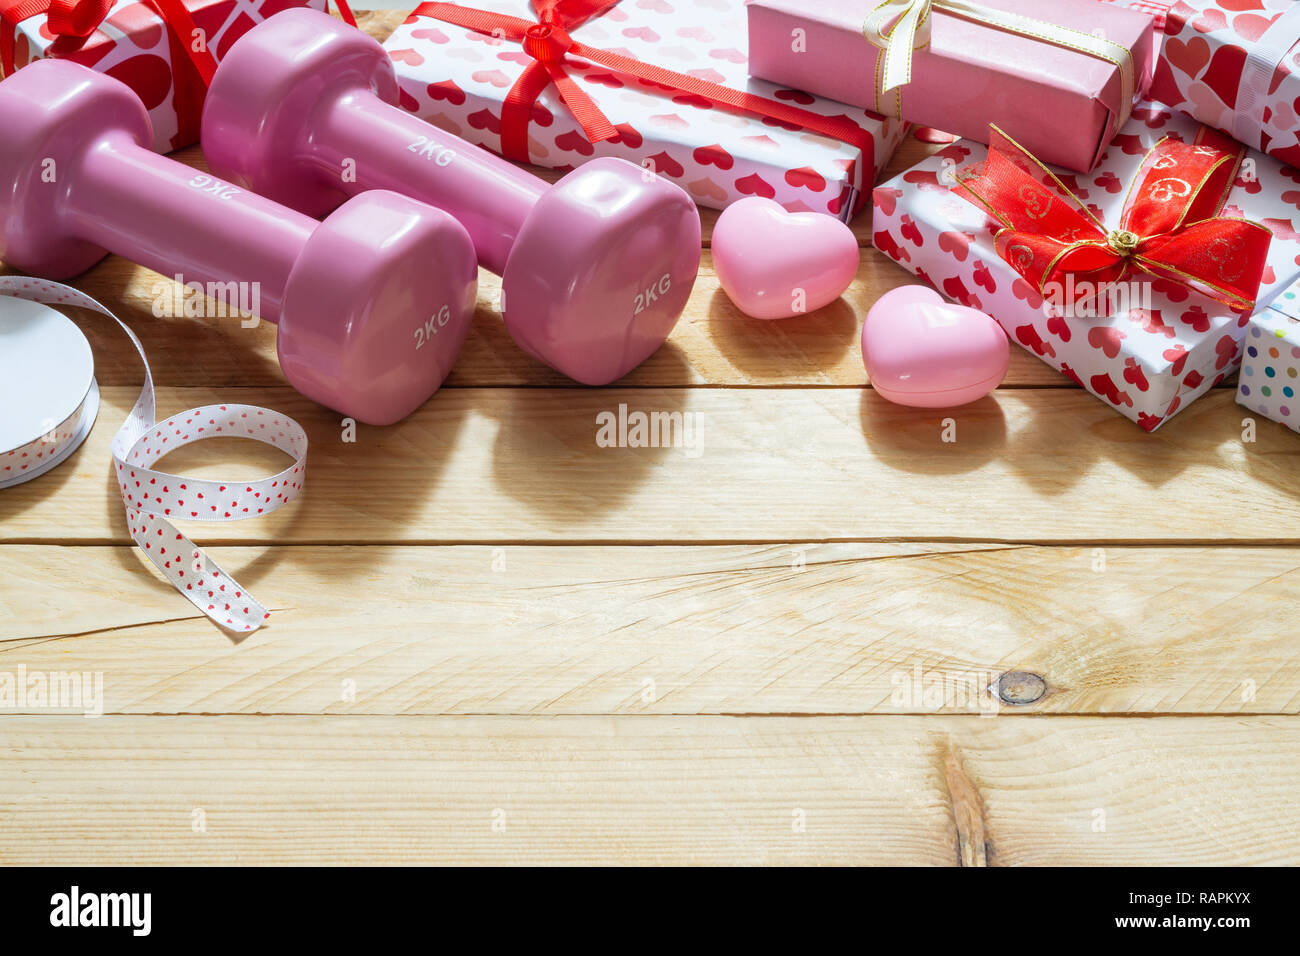 Pink Sport Dumbbells Heart Models And Gift Boxes On Wooden